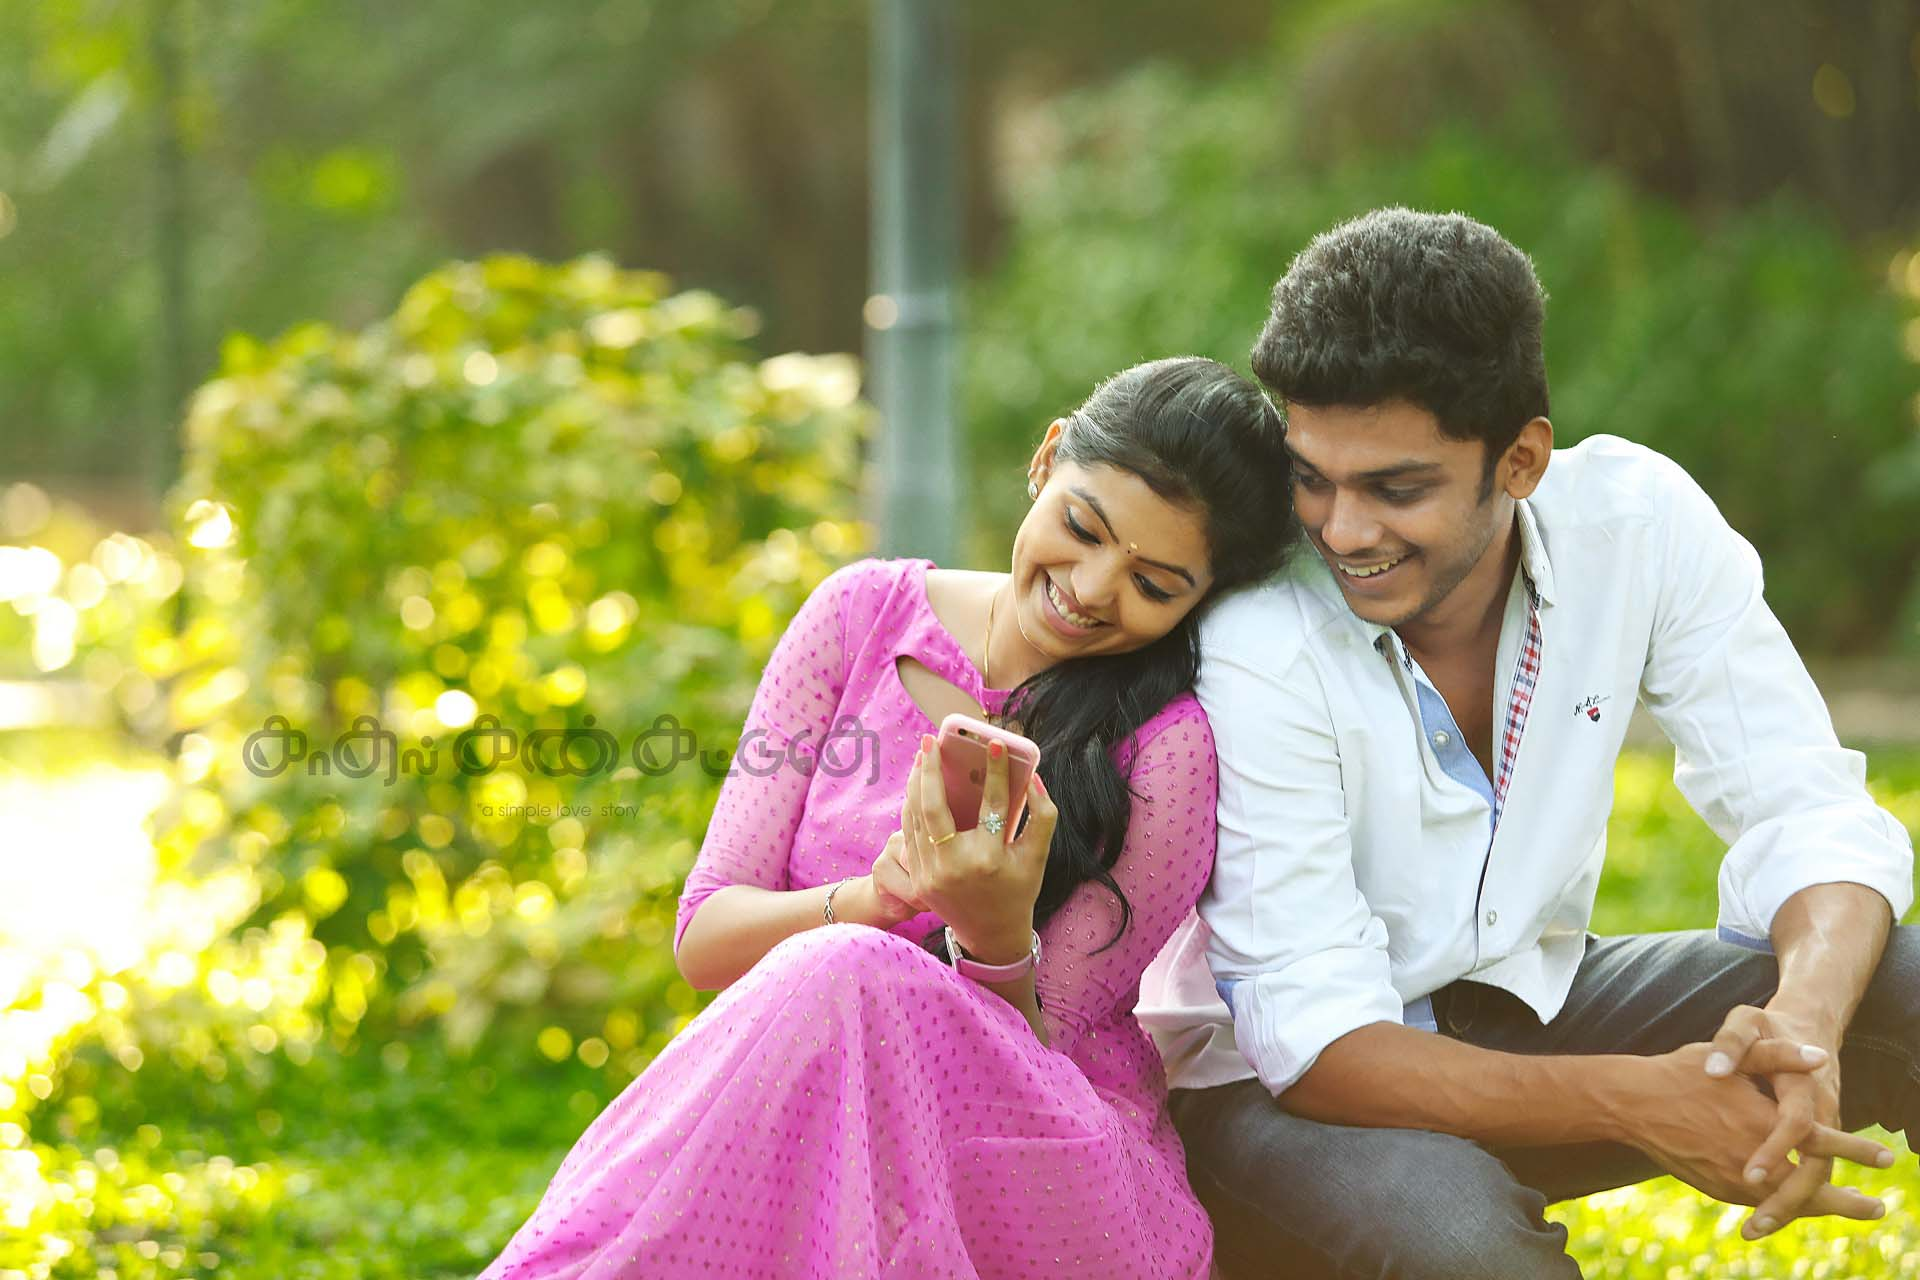 Kadhal kan kattudhe movie gallery